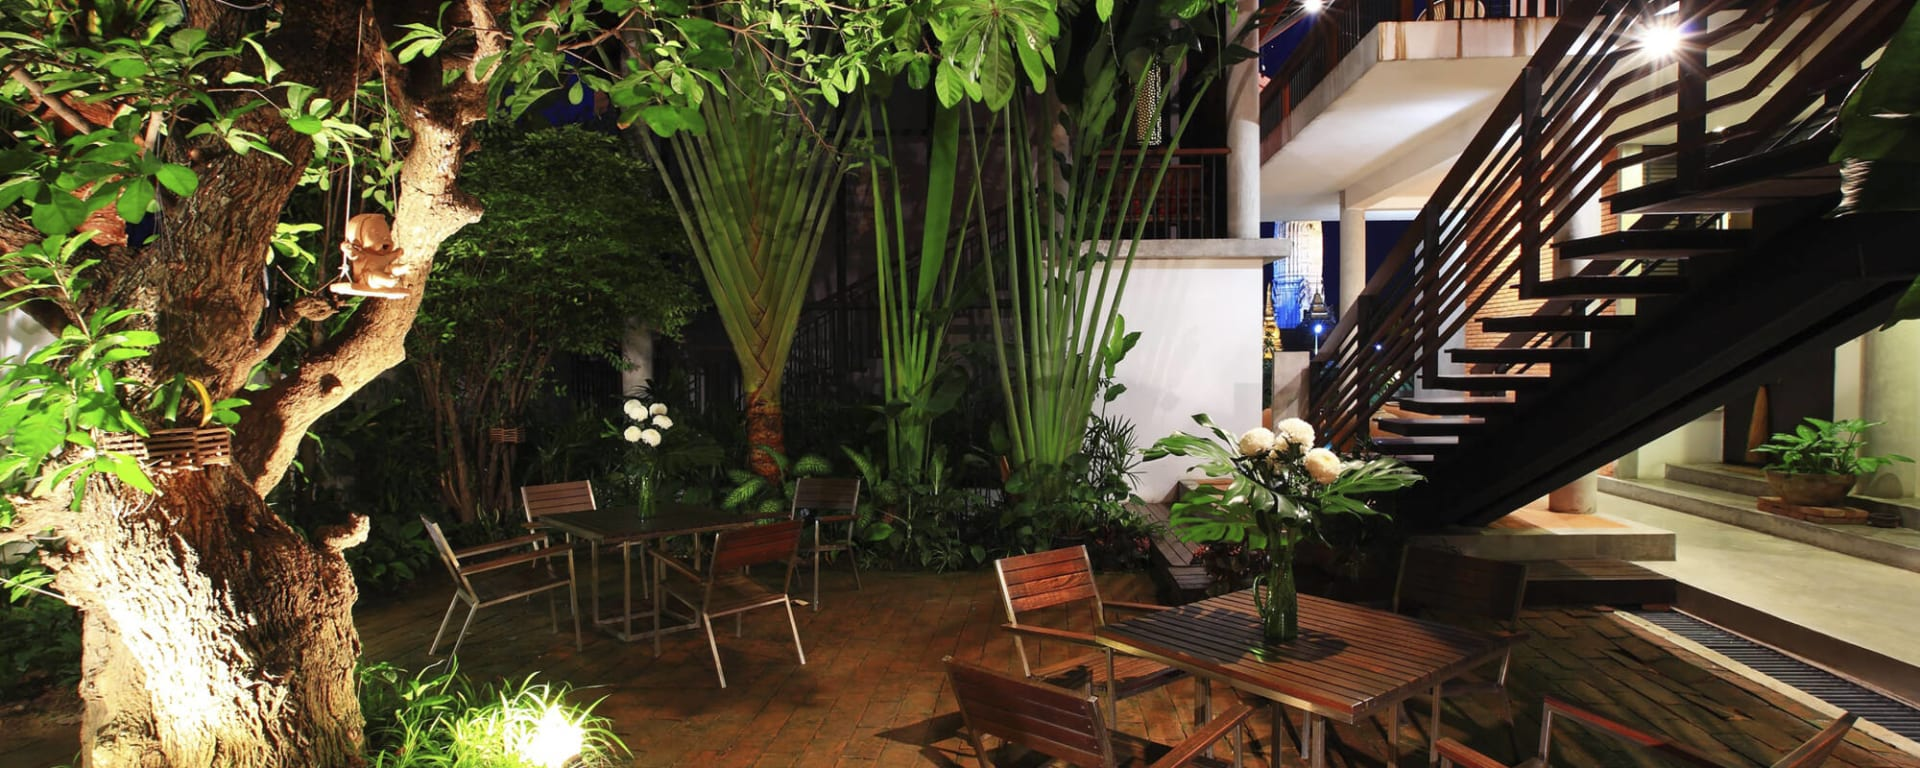 IUDIA on the River in Zentralthailand: Ayutthaya iuDia A Boutique Hotel On The River Cafe